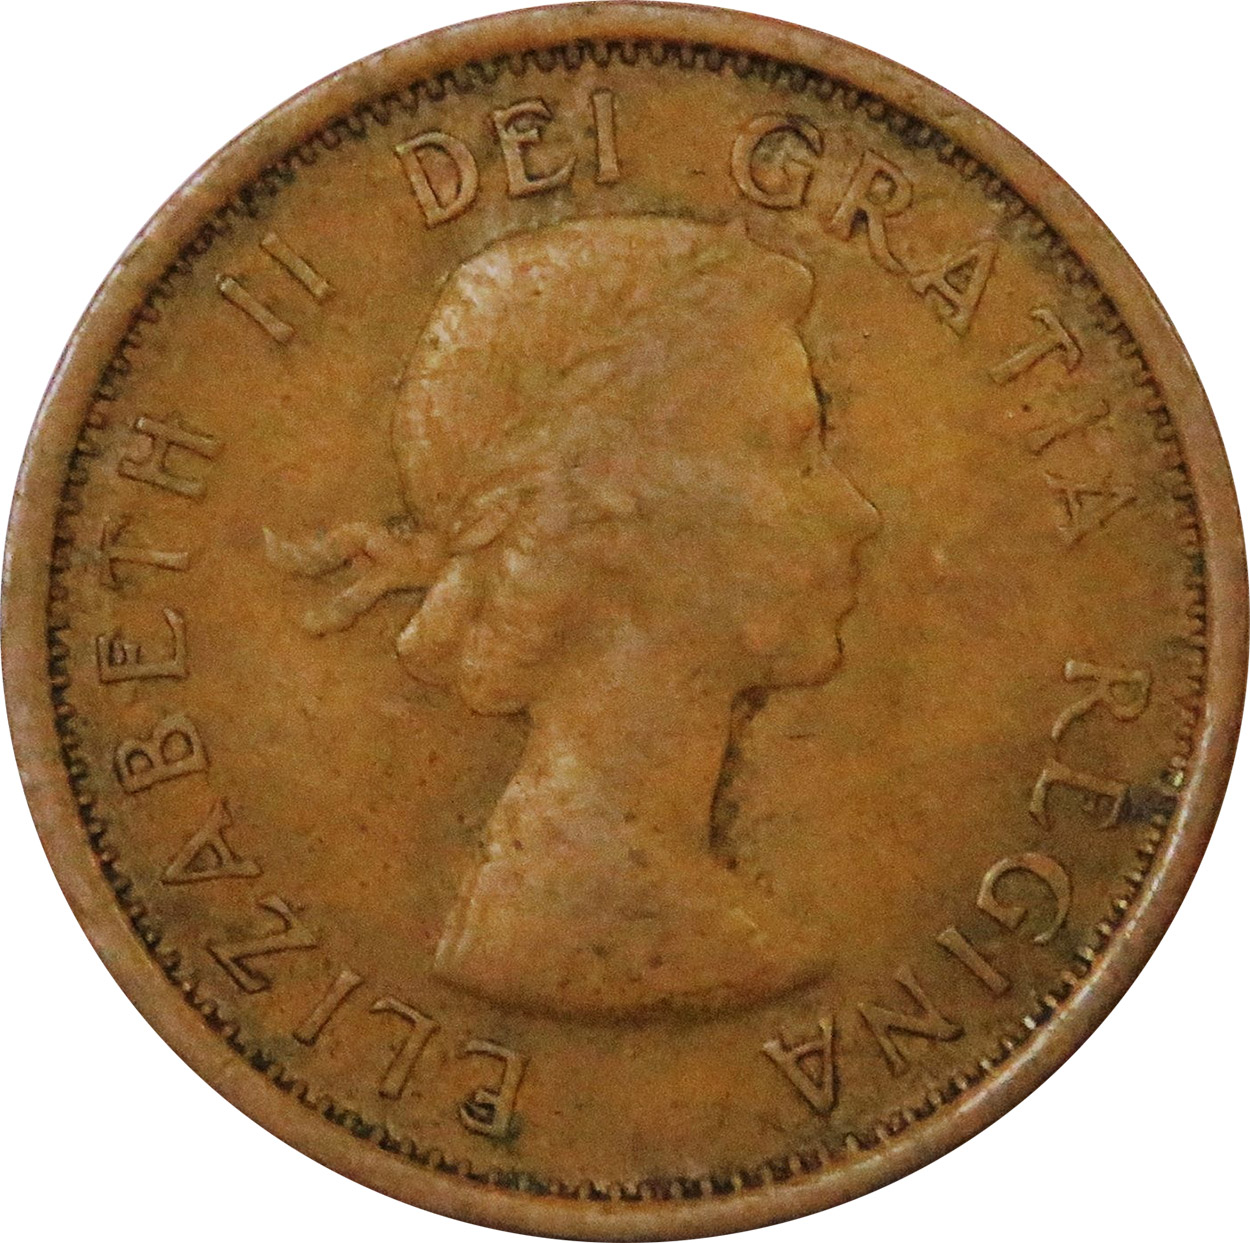 VG-8 - 1 cent 1953 to 1964 - Elizabeth II